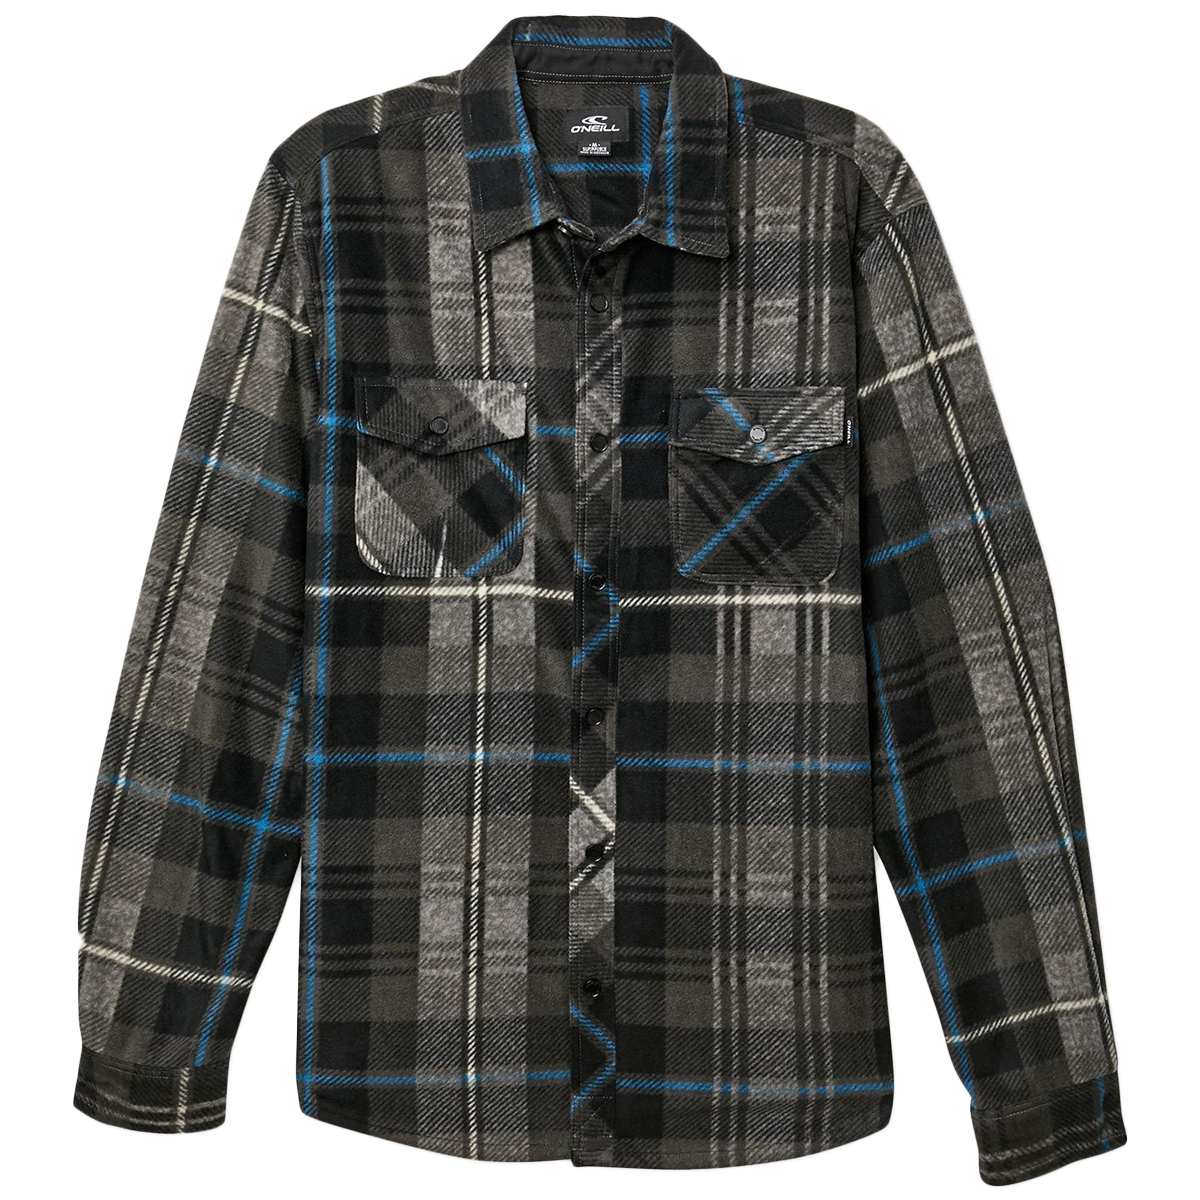 O'neill Men's Glacier Plaid Long-Sleeve Shirt - Black, M